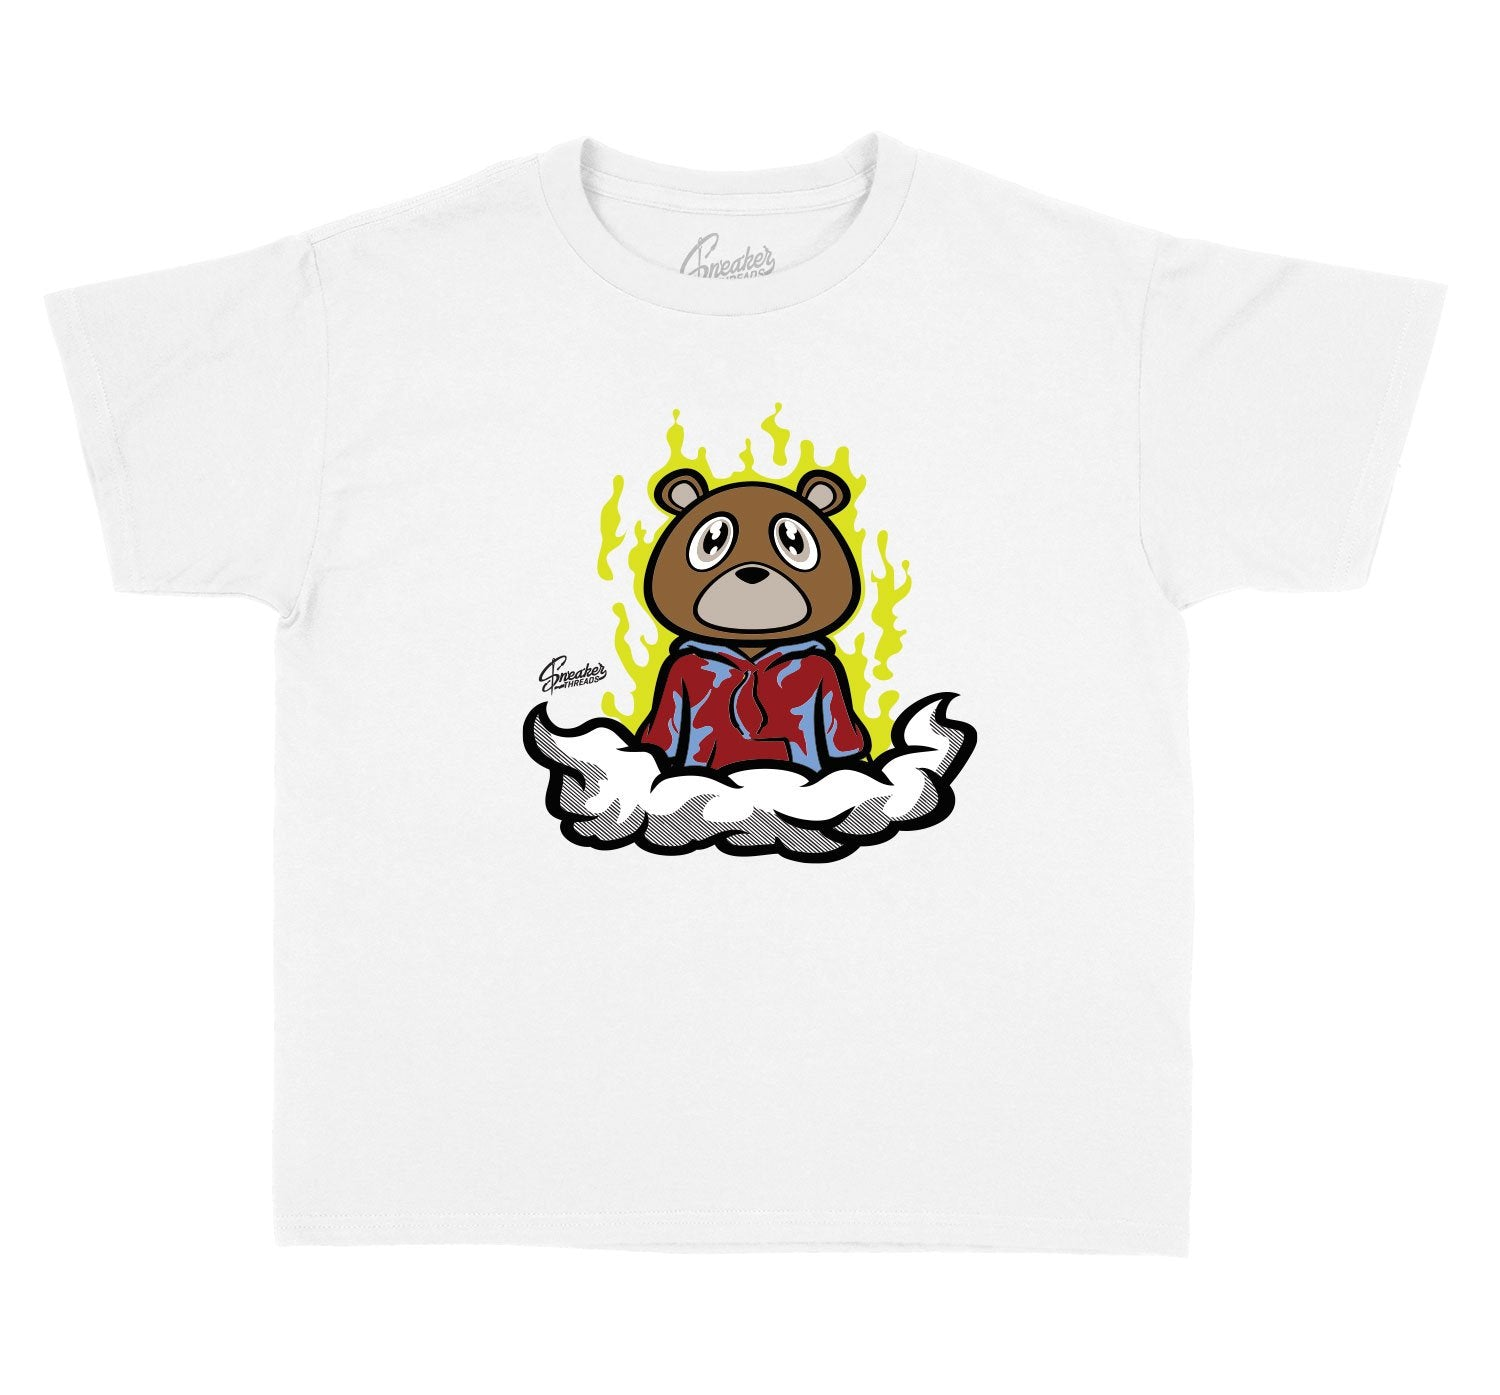 Kids tees made to match the yeezy yecheil sneakers